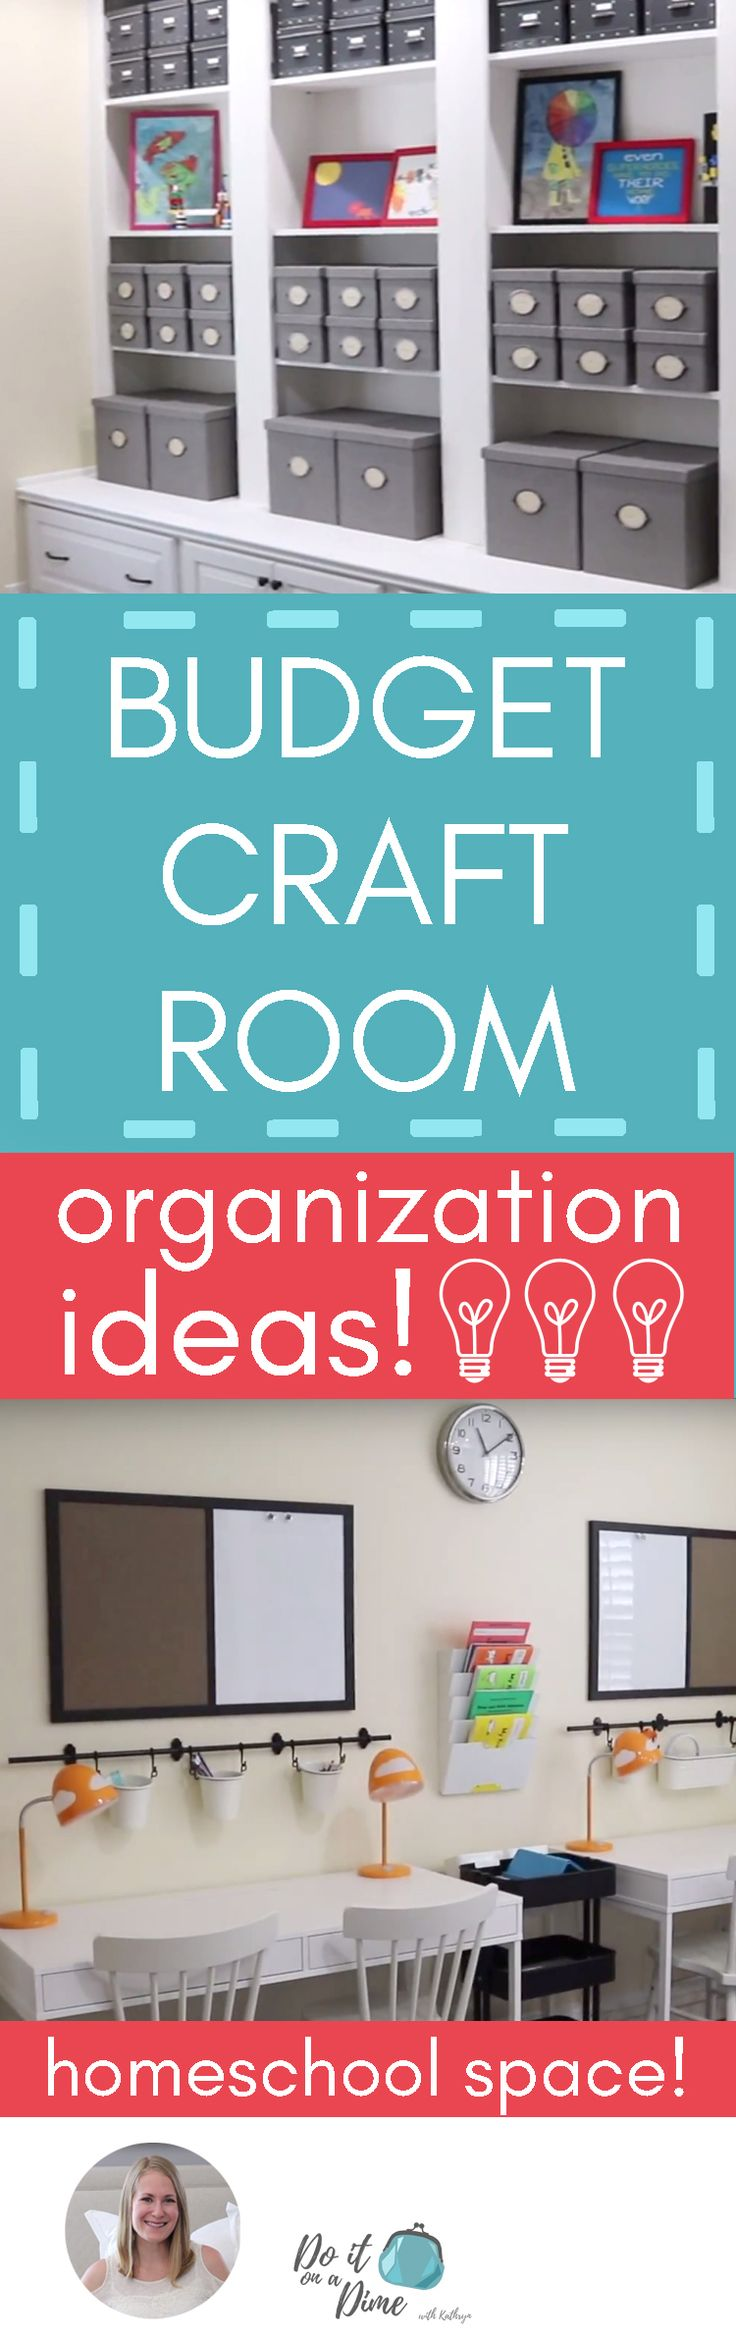 'Budget craft room organization ideas...!' (via DO IT ON A DIME)